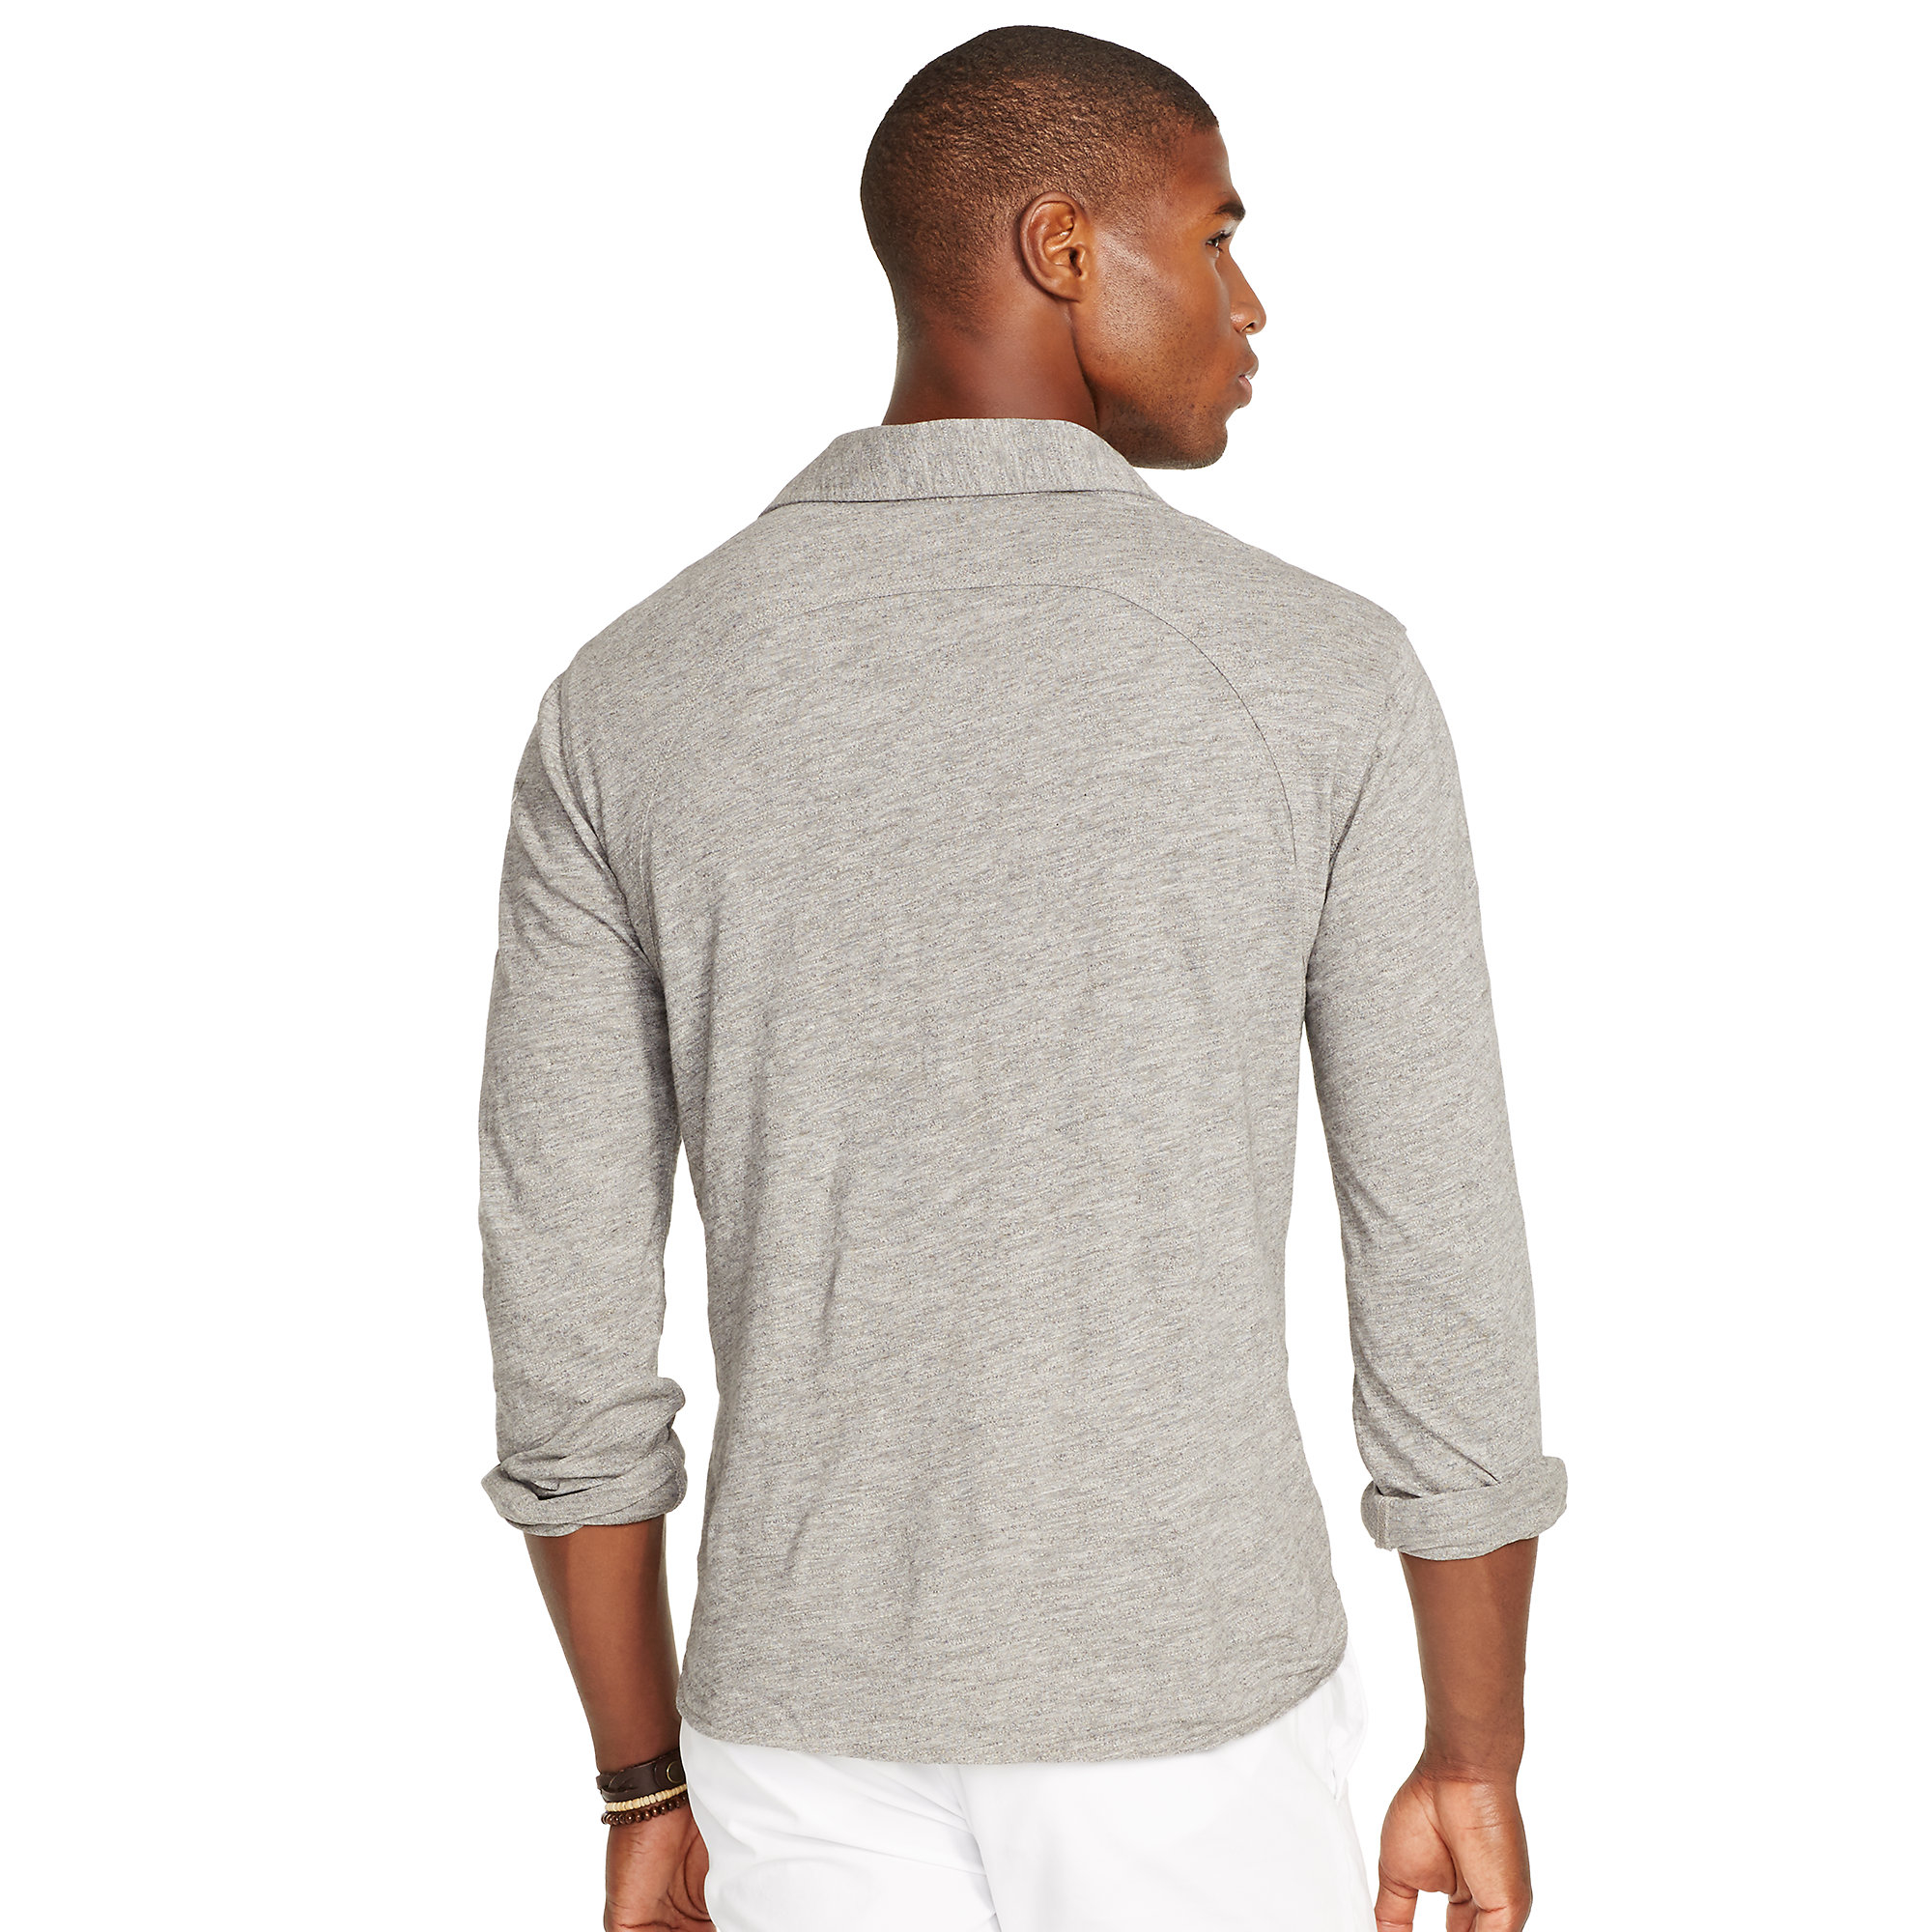 polo ralph lauren cotton jersey pullover shirt in gray for. Black Bedroom Furniture Sets. Home Design Ideas